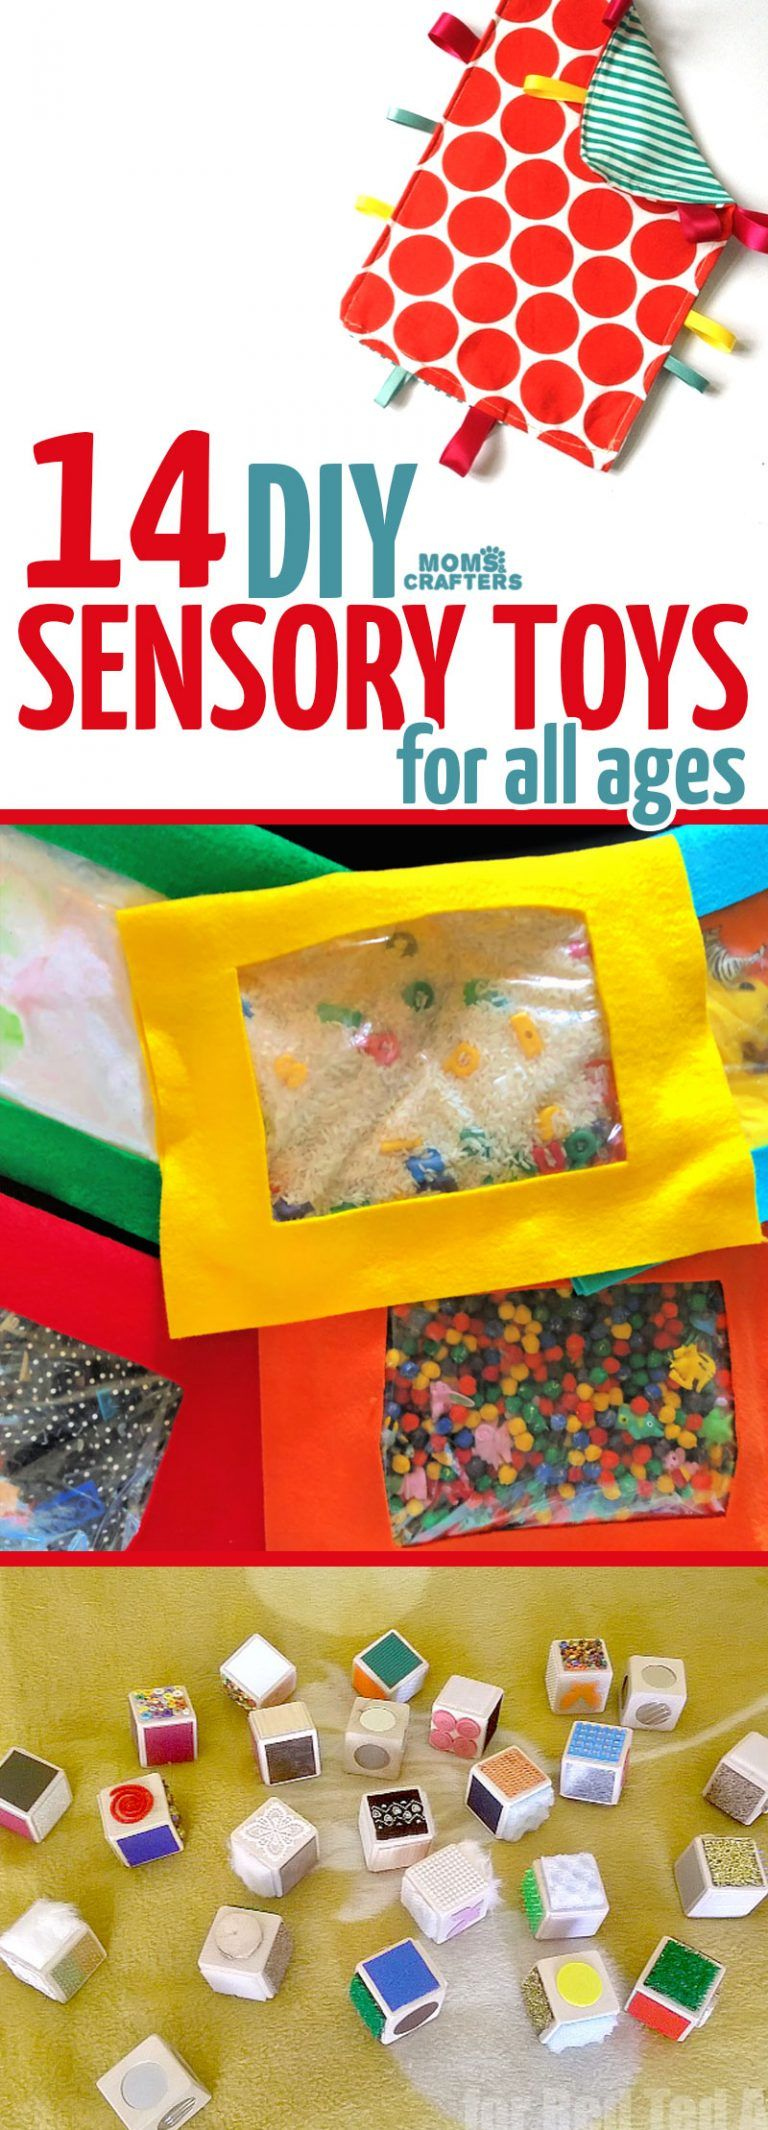 Make these cool toys for sensory play - Baby toys diy, Diy sensory toys, Baby sensory play, Diy sensory board, Diy kids toys, Sensory toys - and lots of fun!